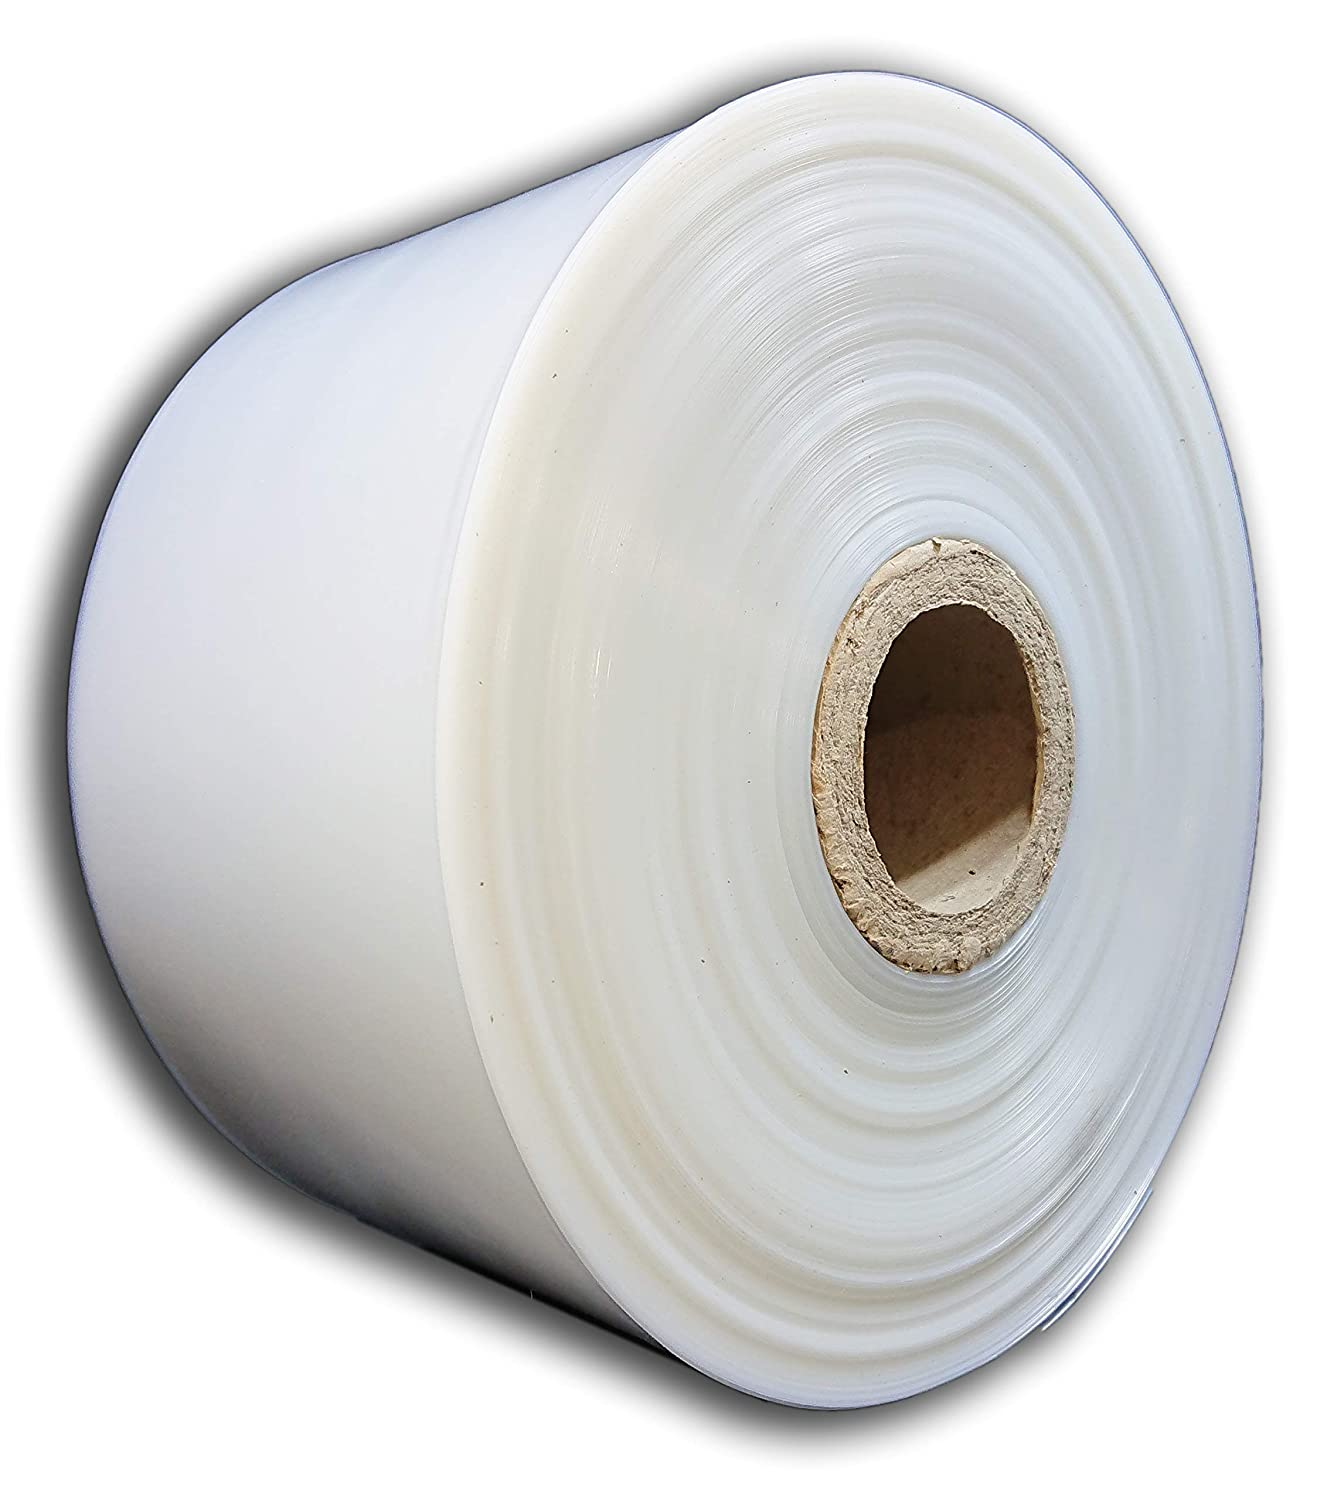 1 Roll Of 18 Wide Clear Polythene Layflat Tubing 336 Metres Per Roll Strong 250 Gauge Transparent Plastic Lay Flat For Packing Packaging Storage Bags